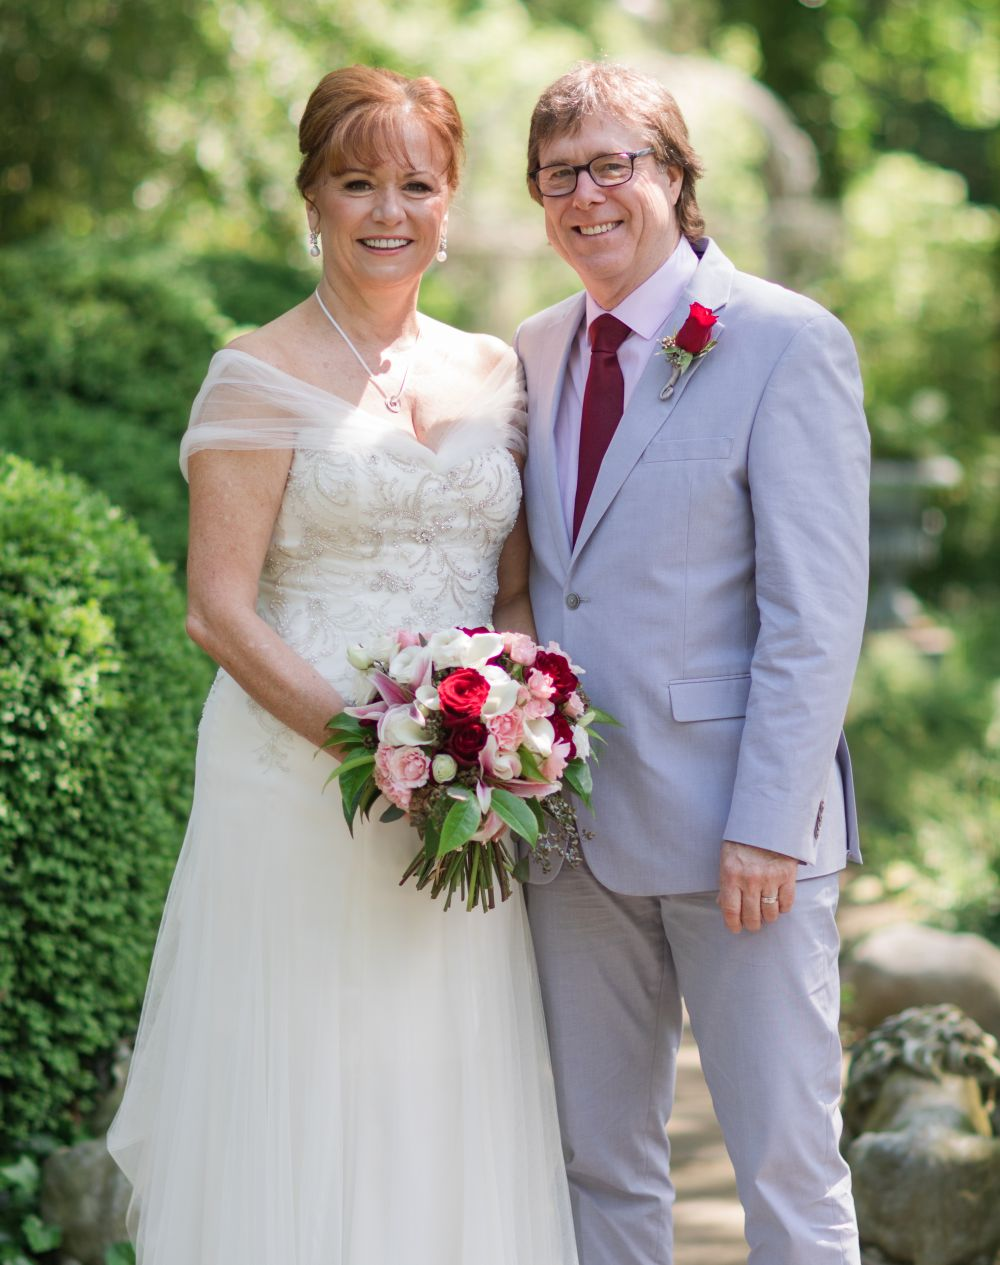 Delaware Christian woman poses in beautiful white wedding dress with husband, also from Delaware, and in pale blue suit